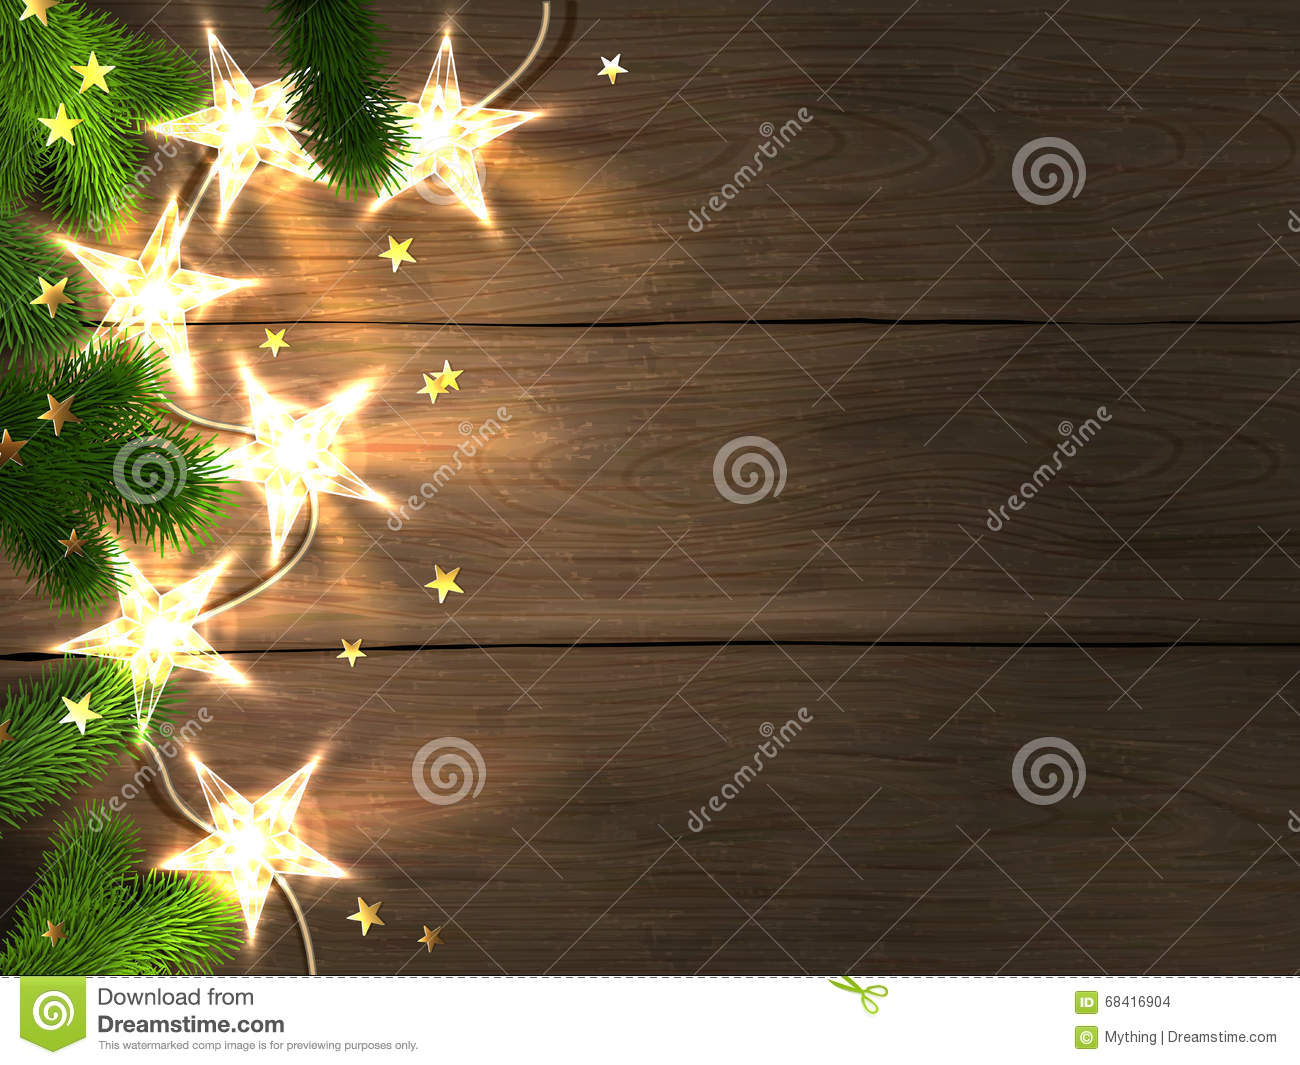 christmas and new year design template with wooden background star shaped lights fir